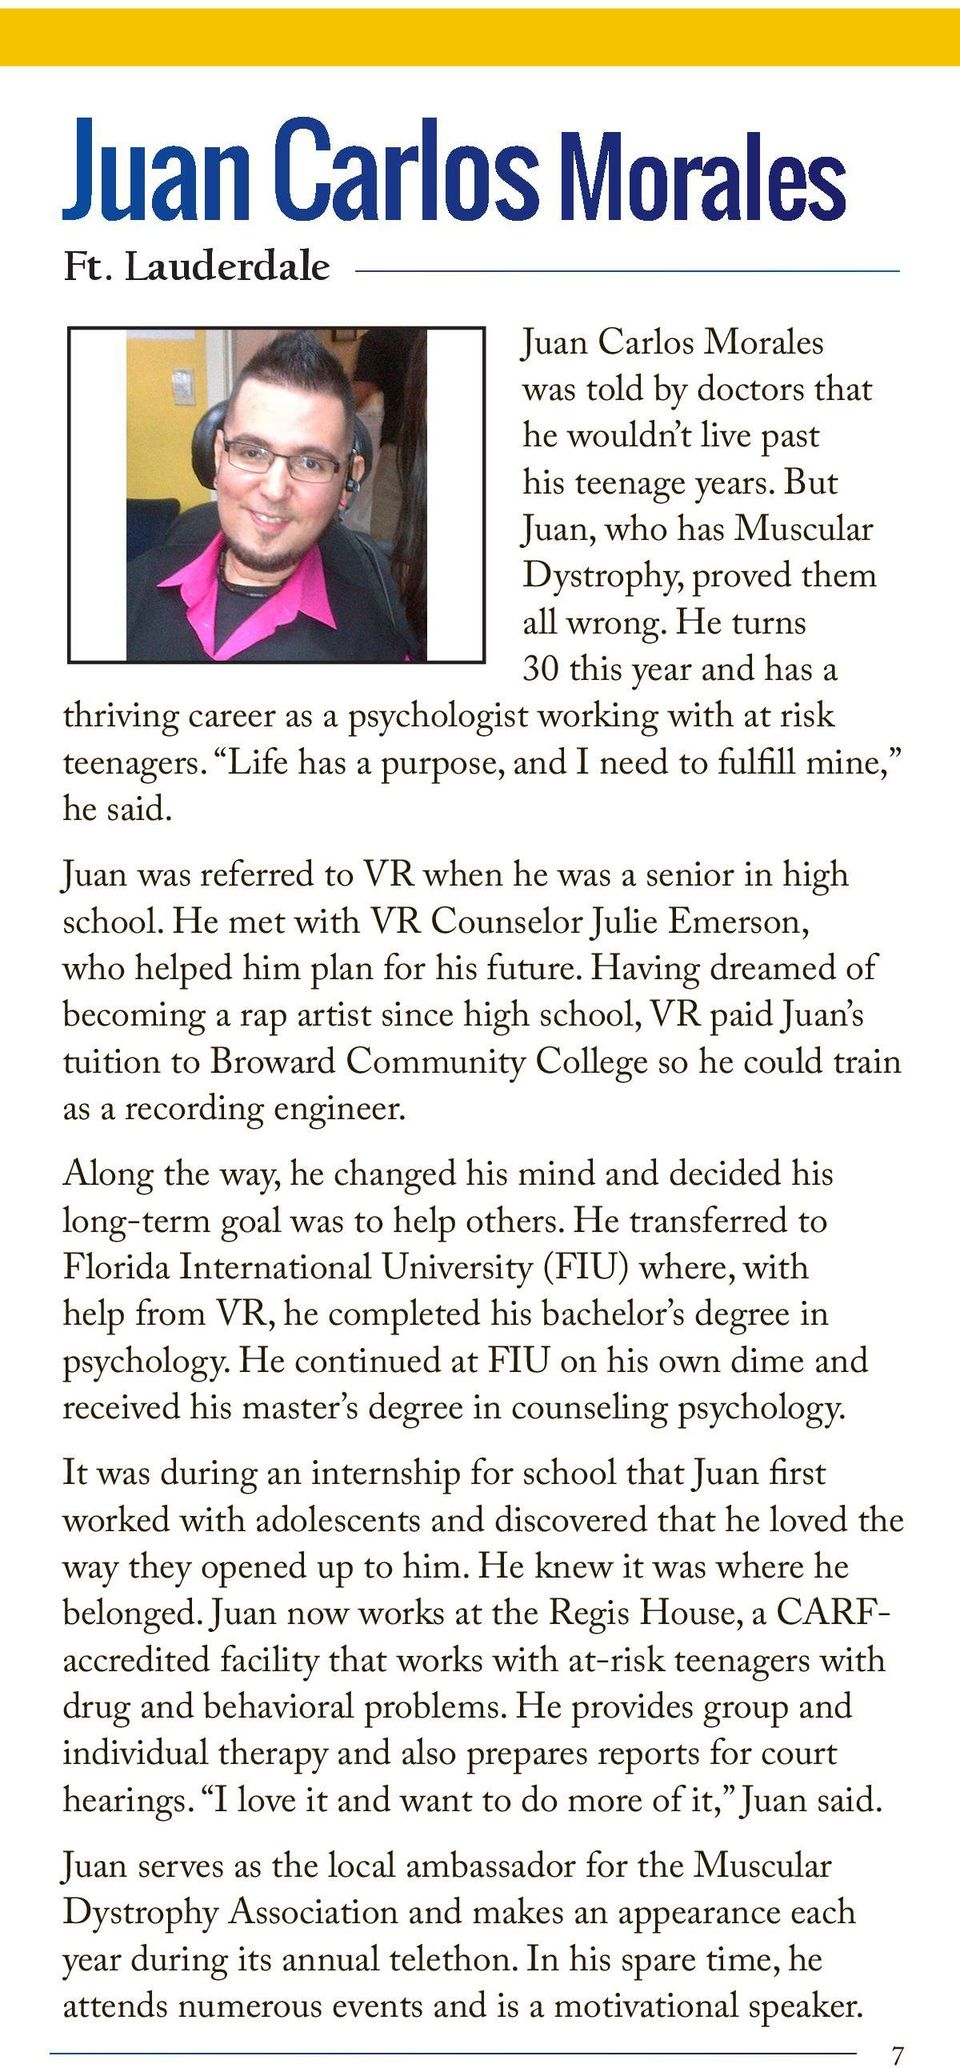 Juan was referred to VR when he was a senior in high school. He met with VR Counselor Julie Emerson, who helped him plan for his future.